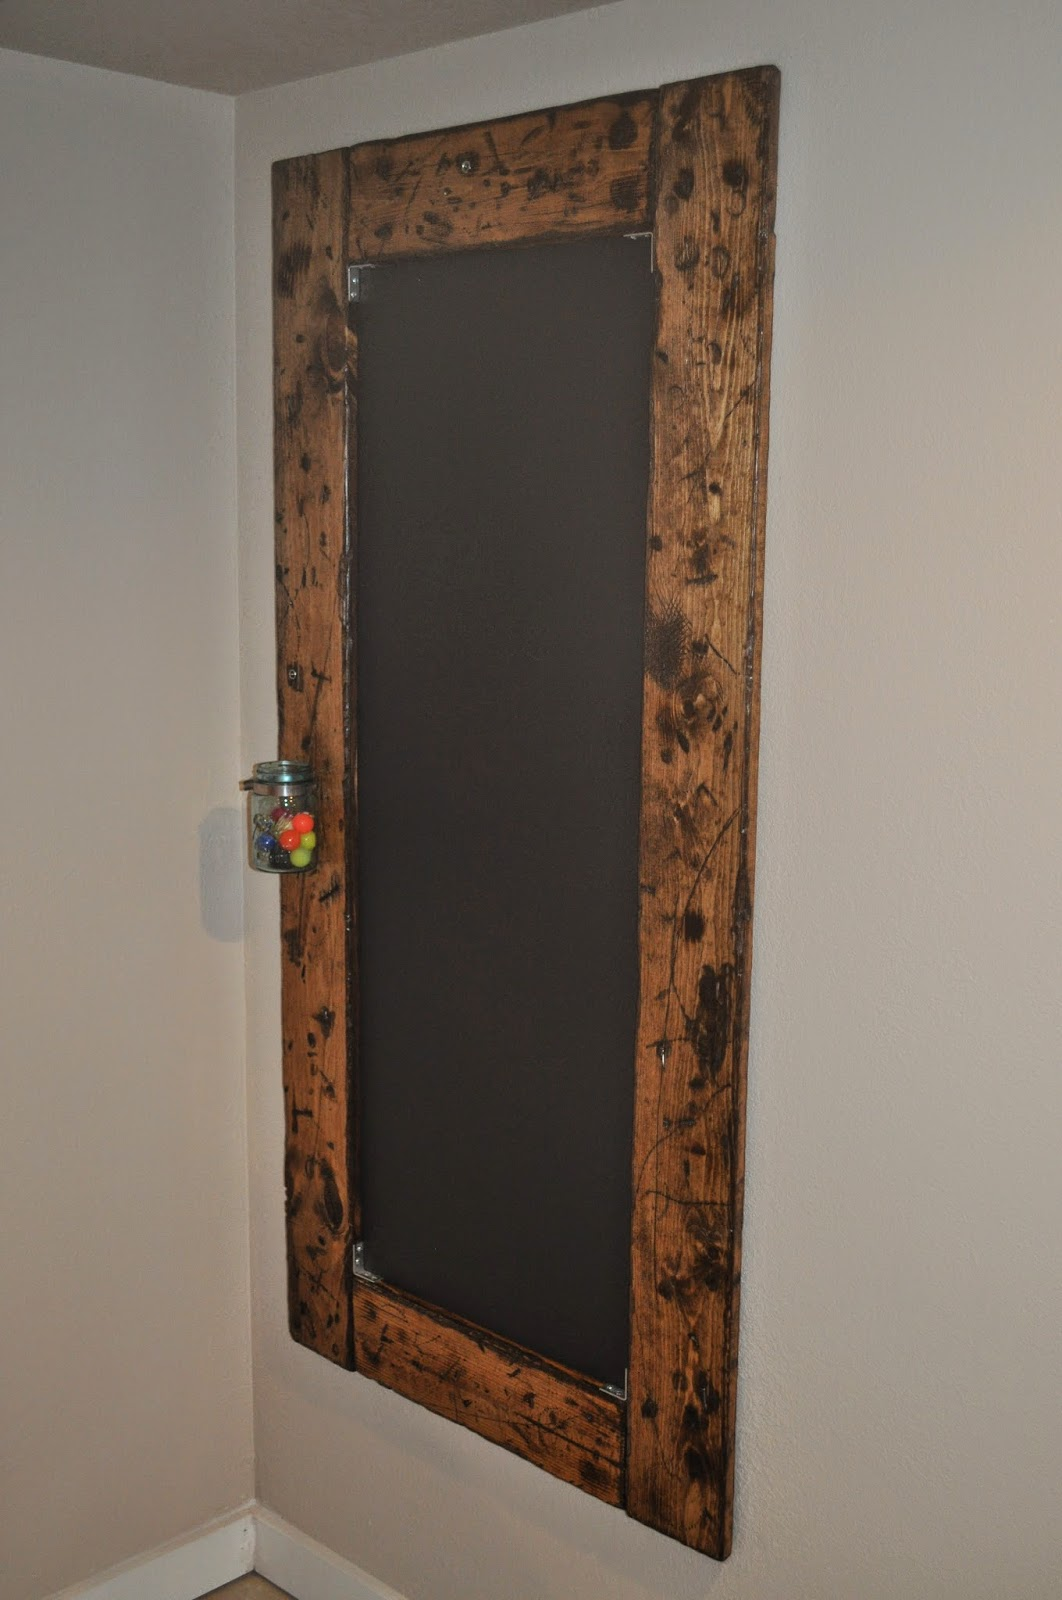 diy, do it yourself, chalkboard, distressed, industrial, design, basement, project, nuts, bolts, mason jar, chalkboard paint, paint